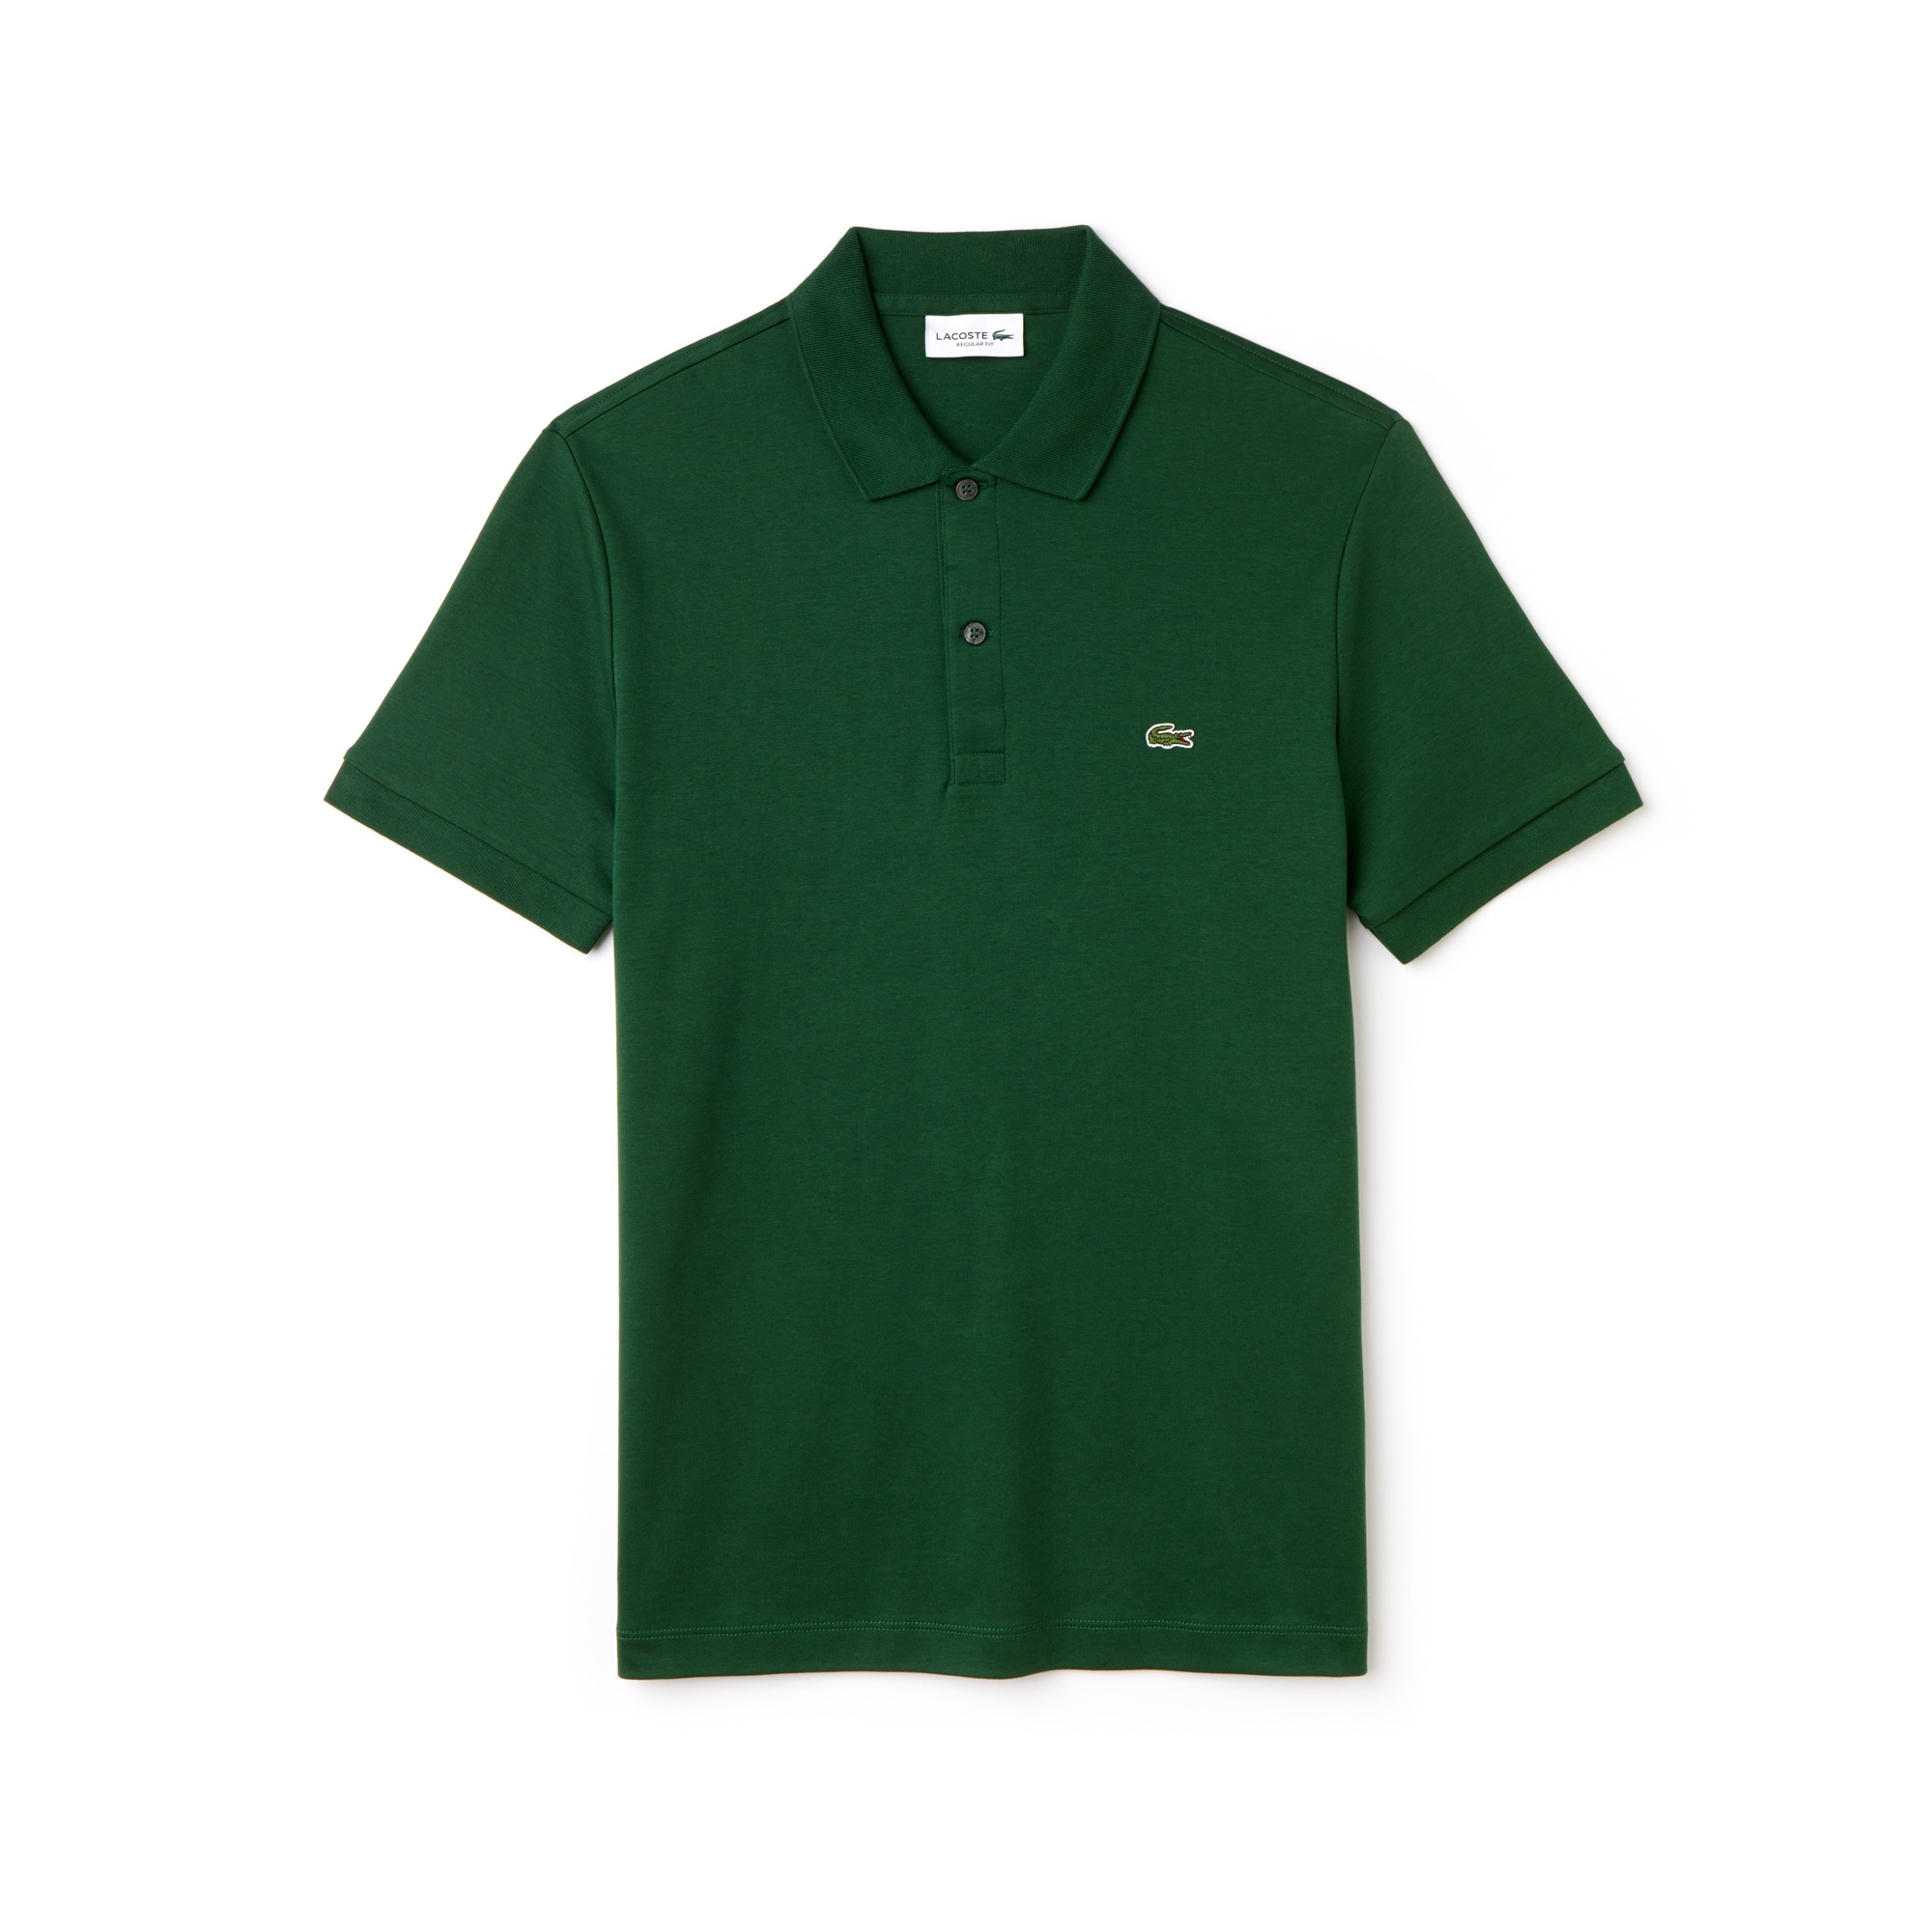 new product 39150 3e520 Polo Shirts on Sale | The Lacoste Polo Shirt Sale | LACOSTE